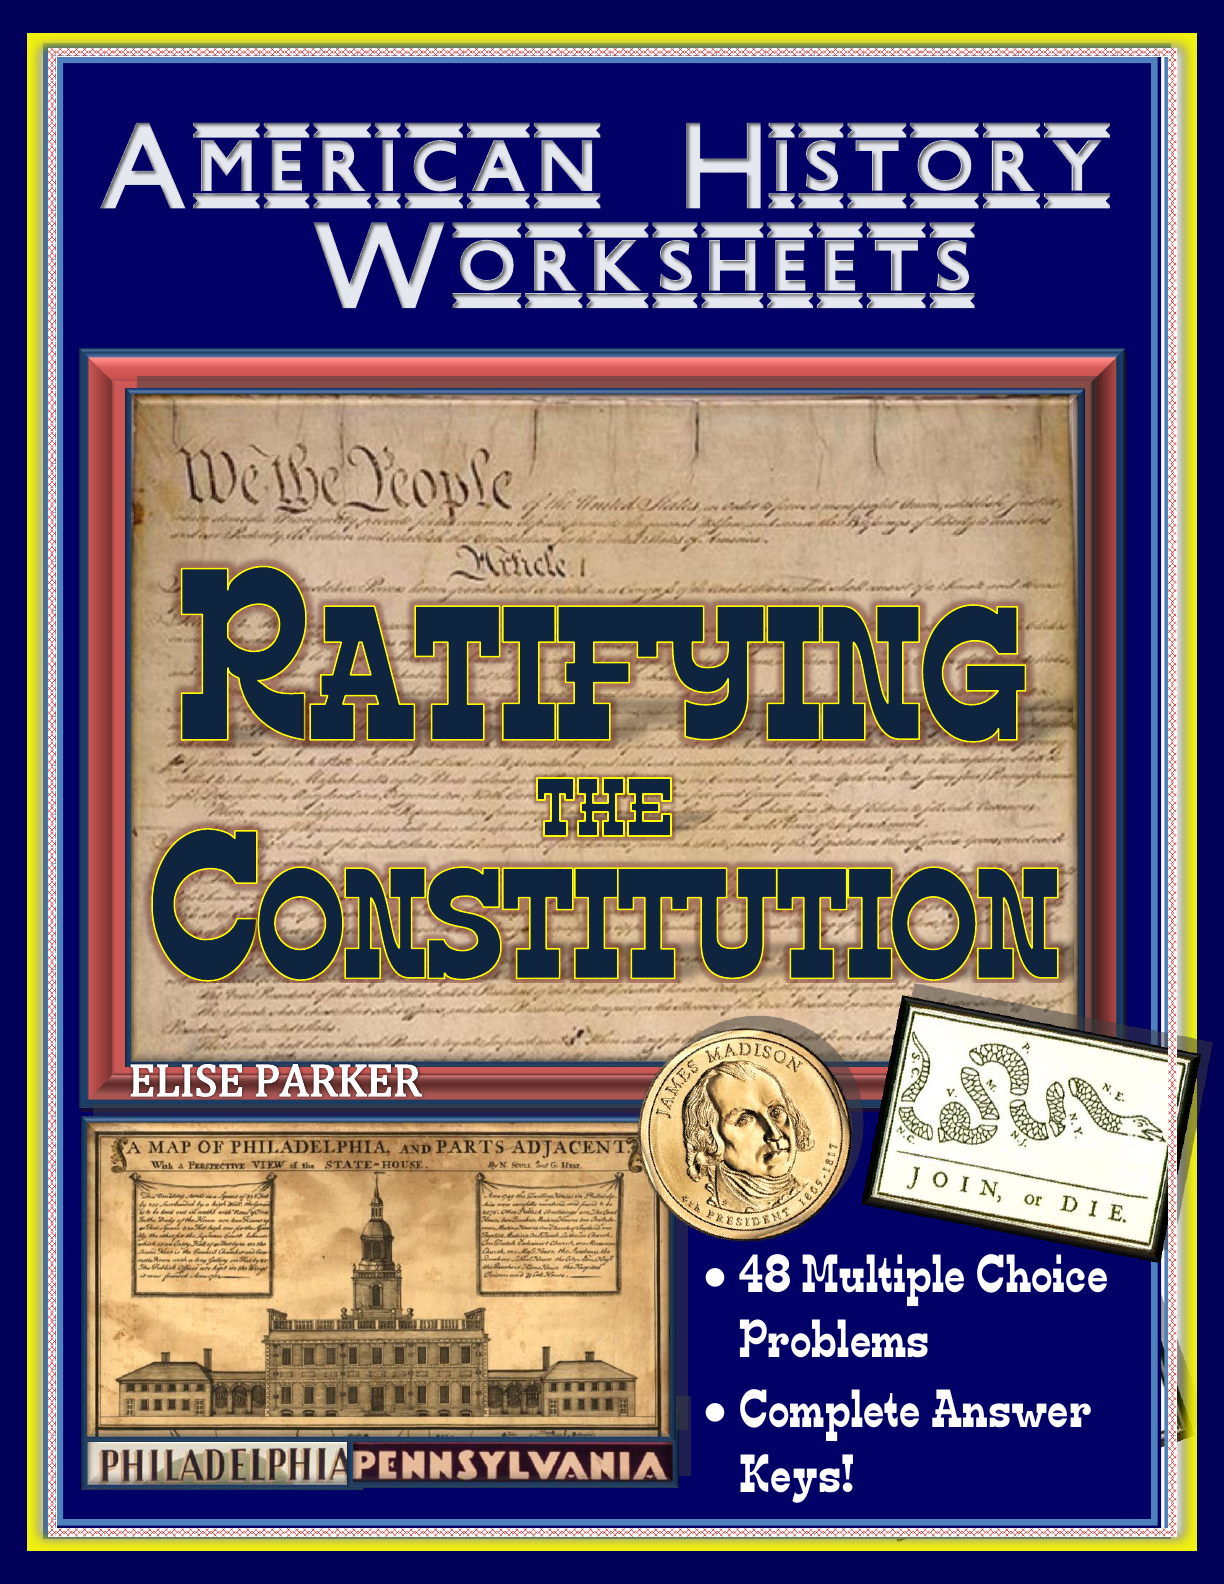 Microorganism Worksheet American History Worksheets  Ratifying The Constitution  Noun Worksheets For Kids Word with Suffixes Worksheets 6th Grade American History Worksheets  Ratifying The Constitution Worksheet Identify The Parts Of Speech Worksheet